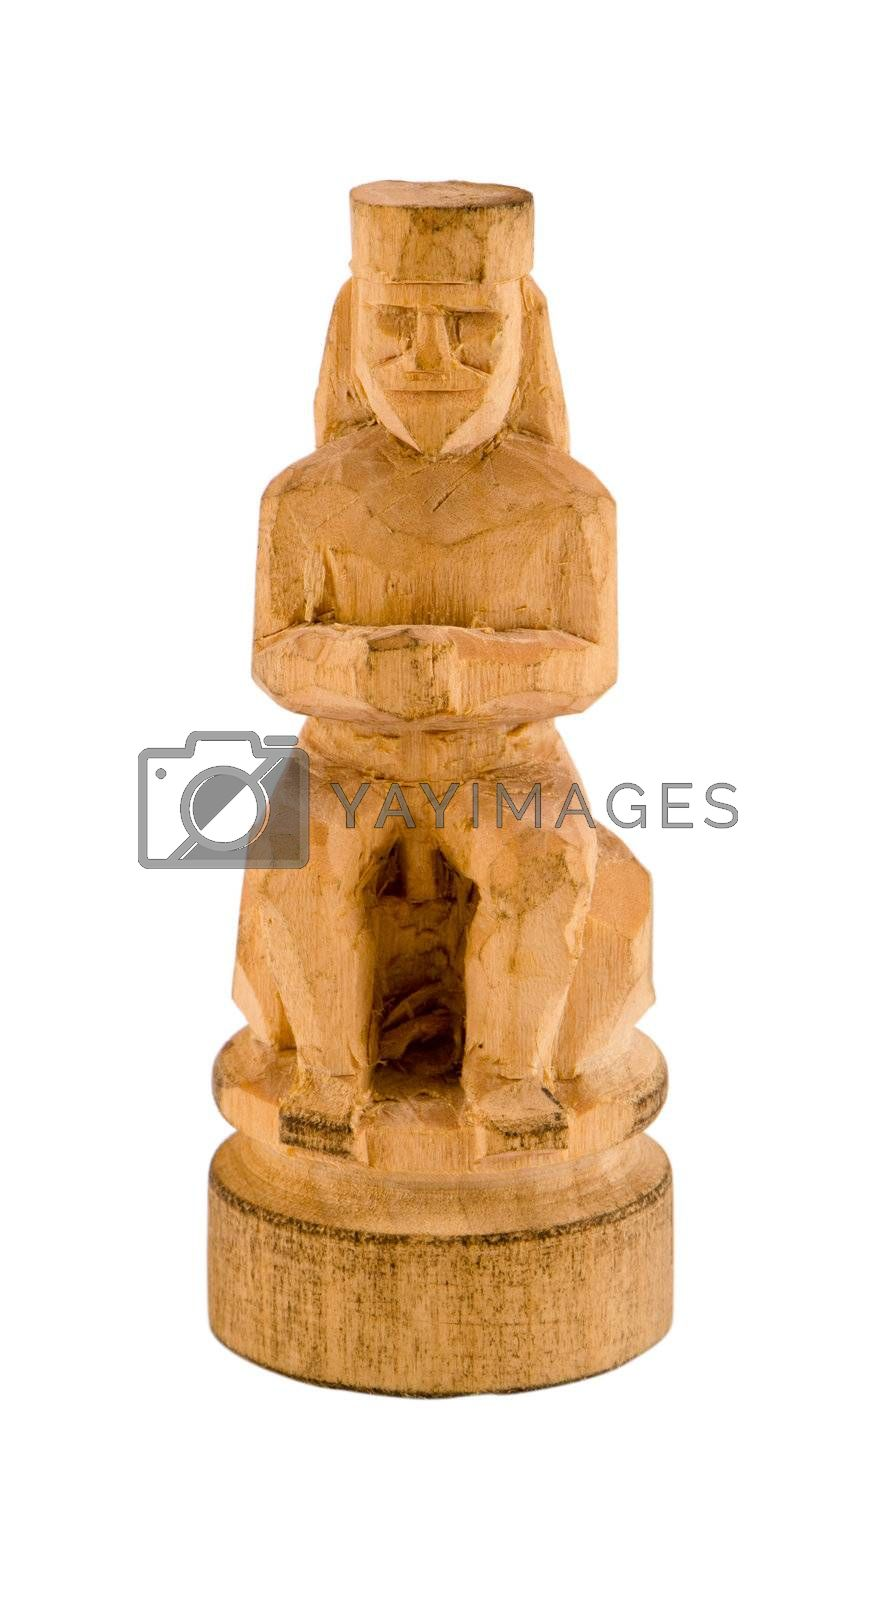 priest statue simply carved handmade craft from wood piece isolated on white background.